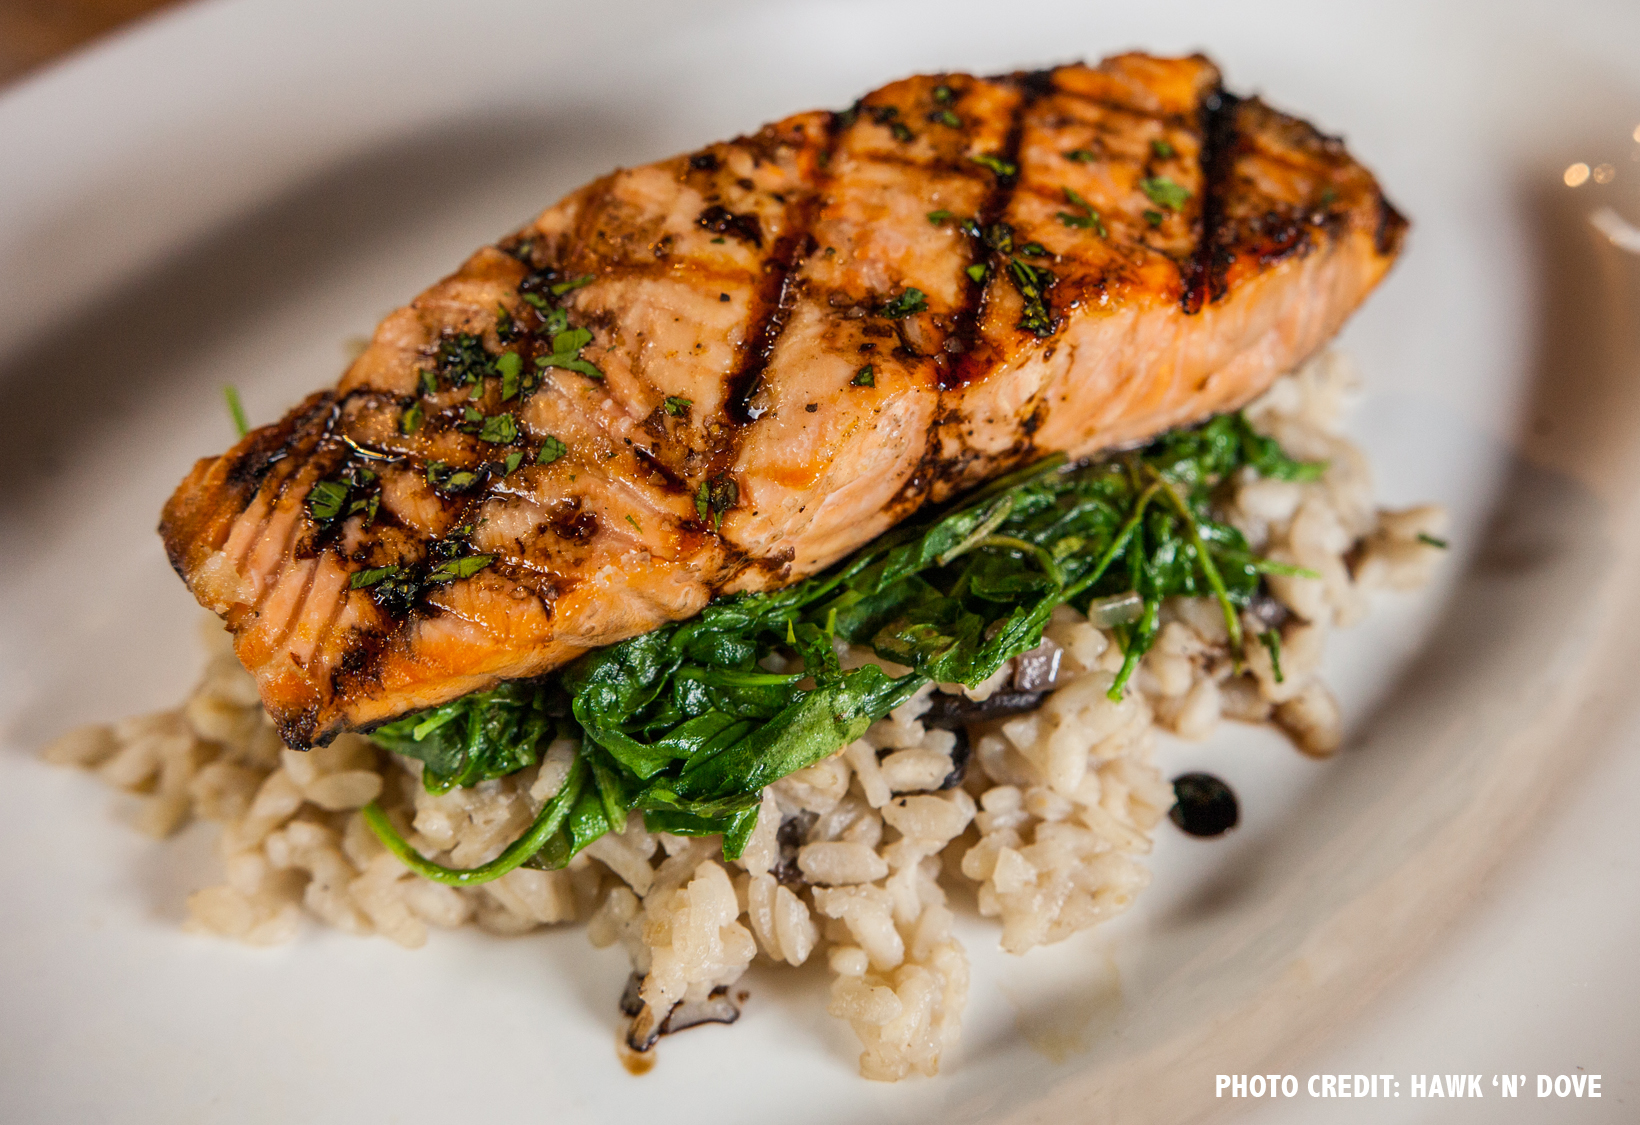 Grilled Atlantic salmon with mushroom risotto, wilted arugula and balsamic glaze.